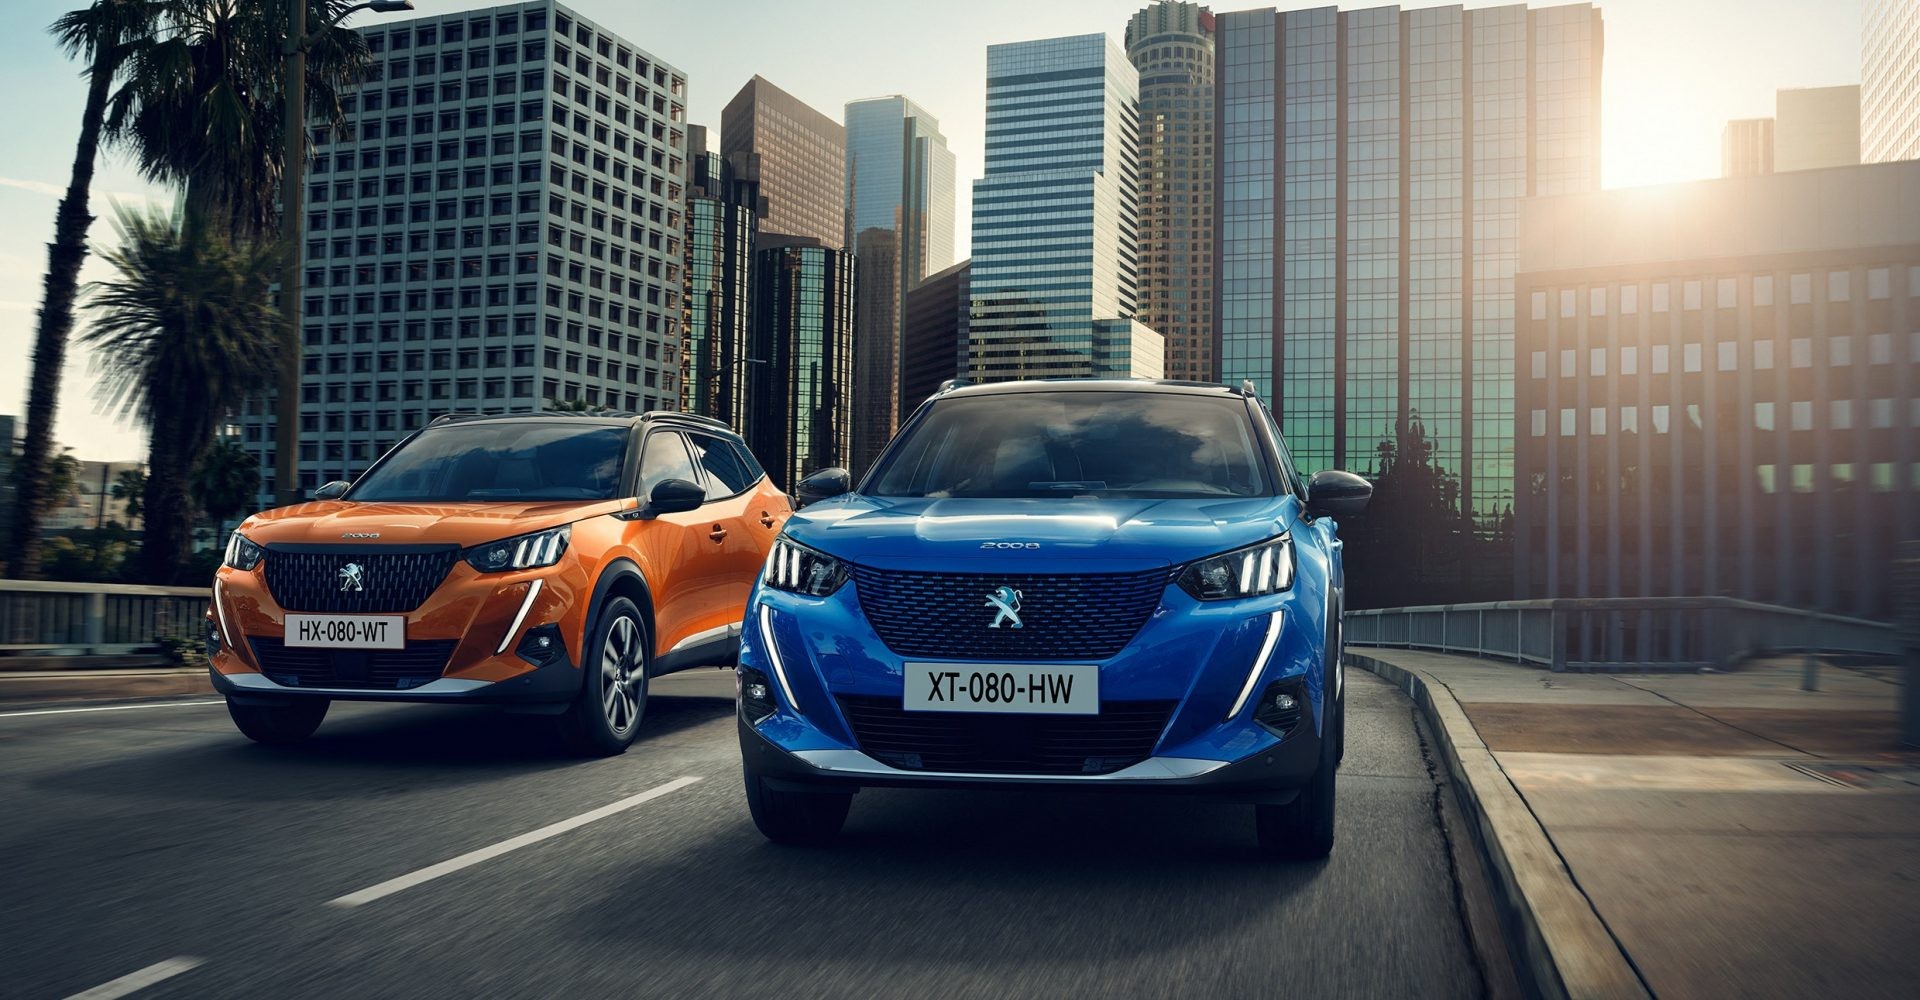 Order books open for Peugeot 2008 and all-electric e-2008